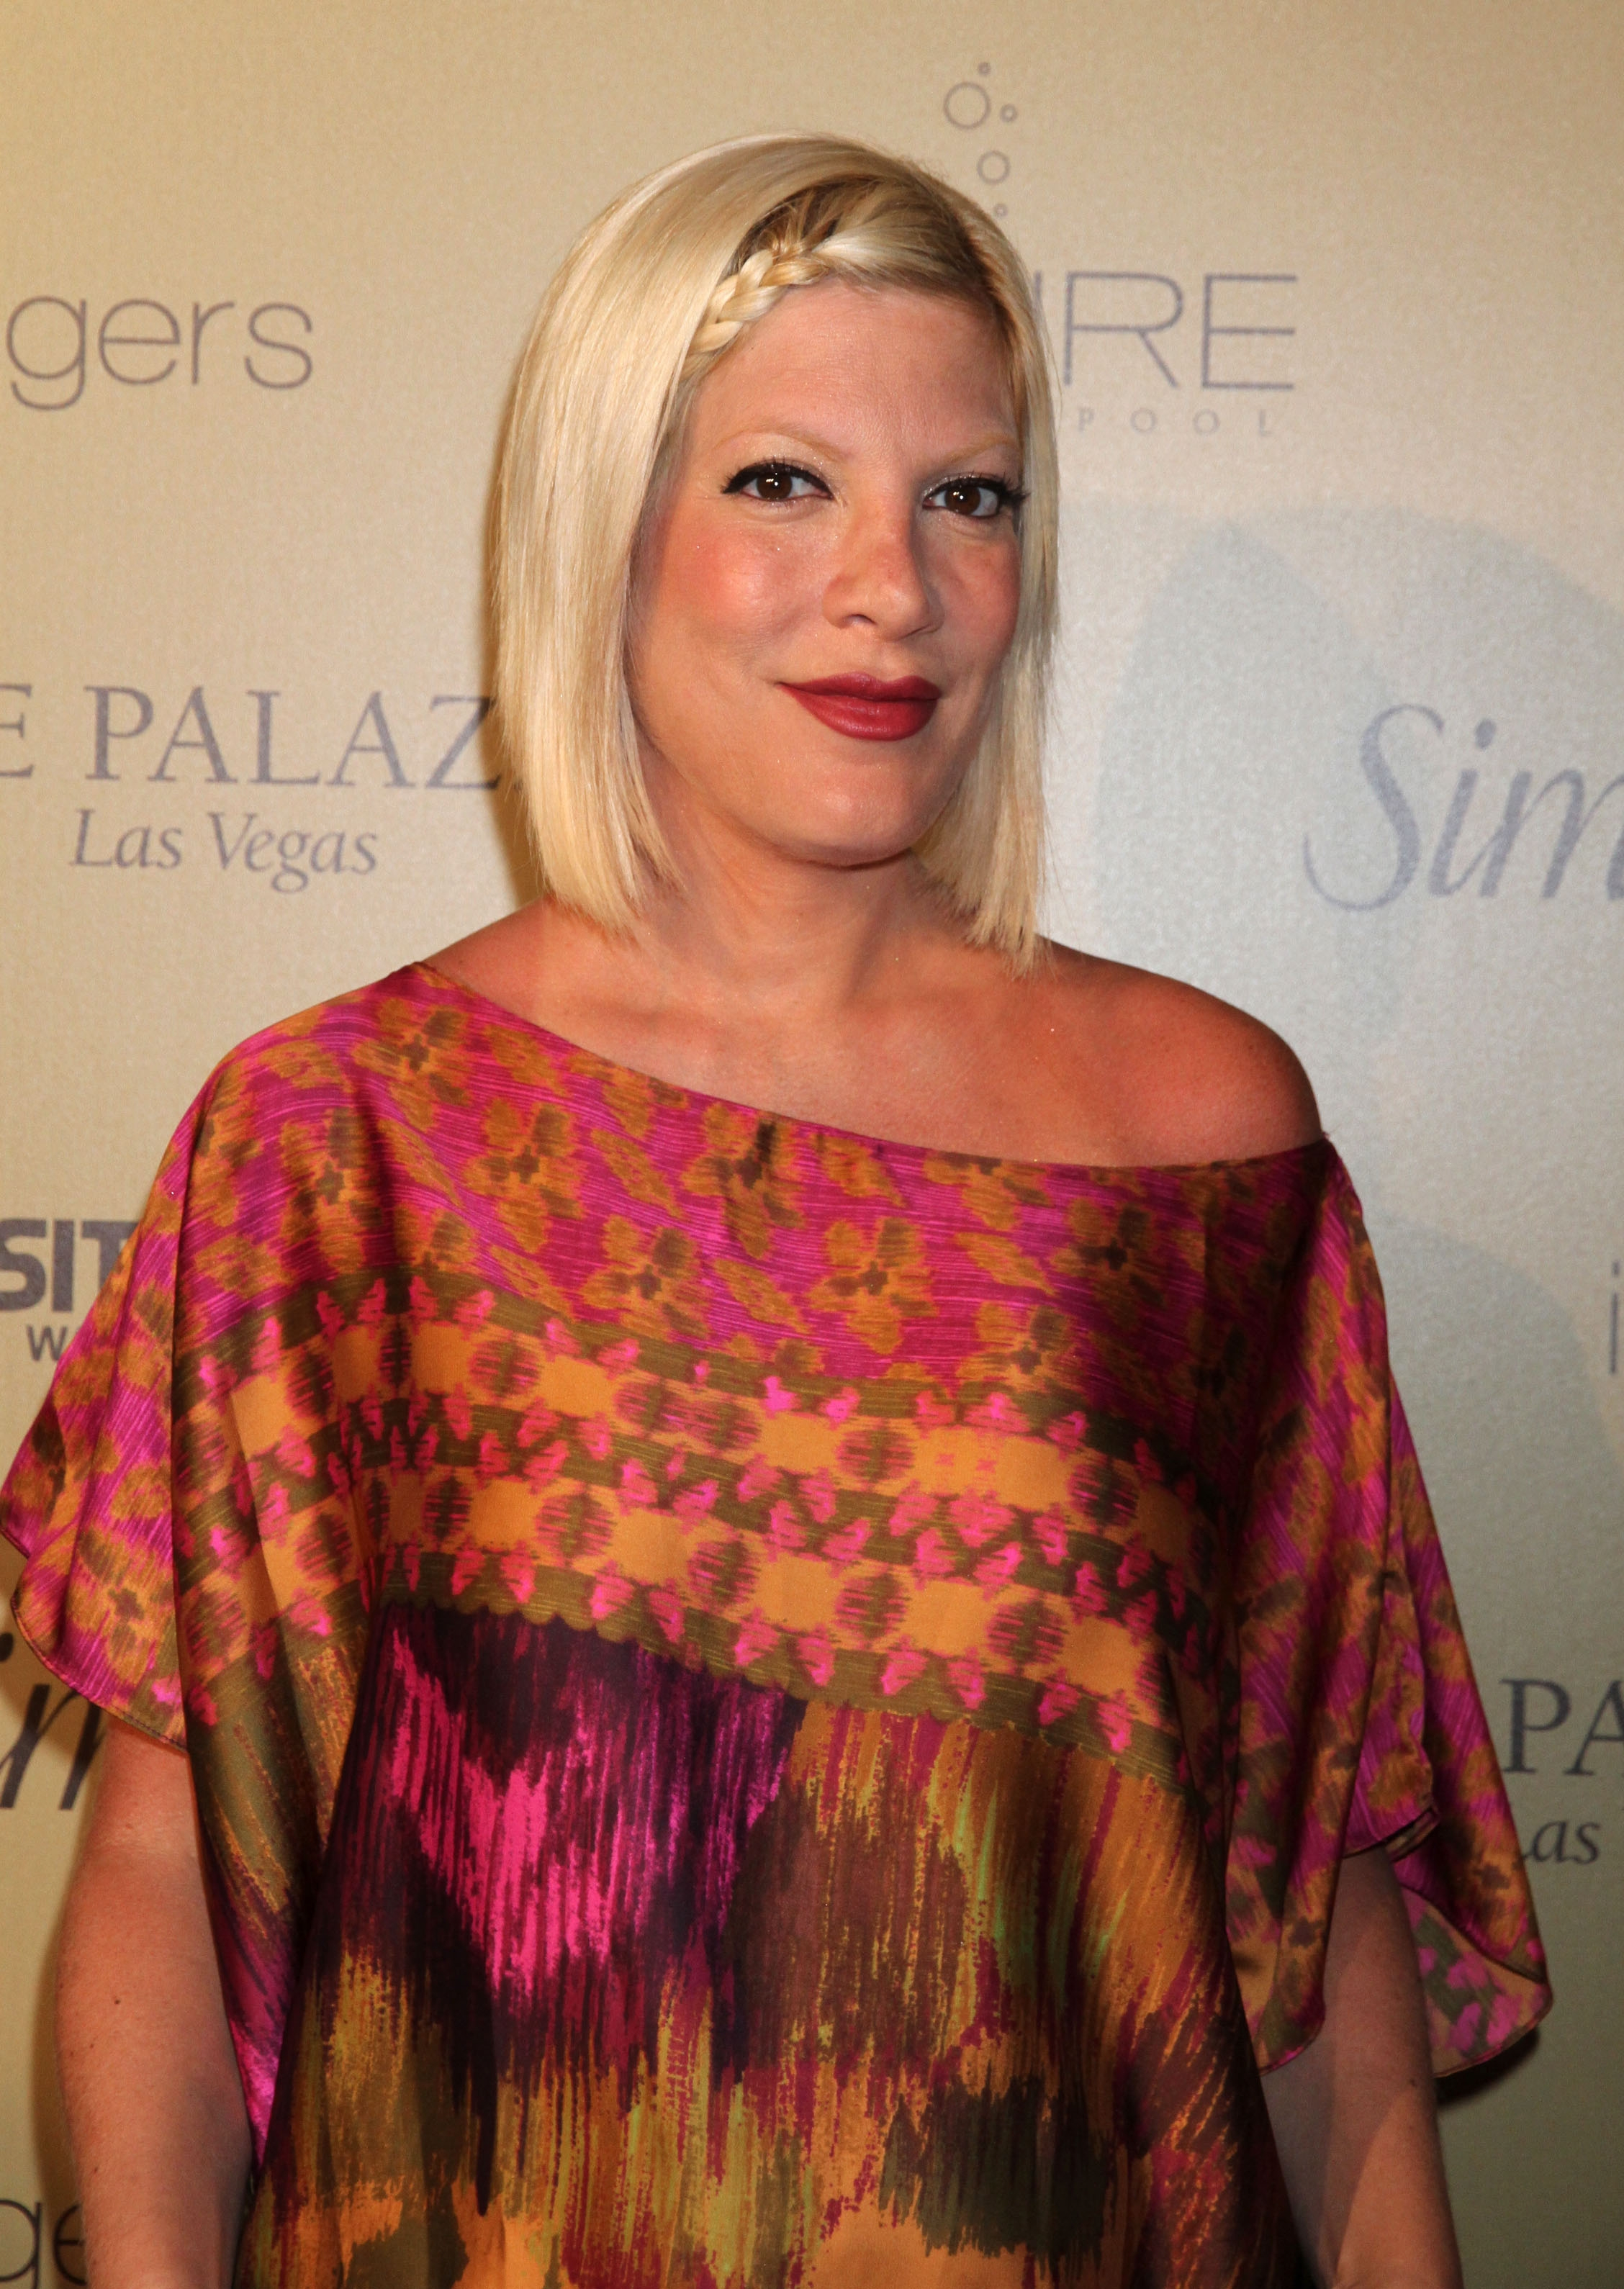 Tori Spelling, mum to Liam, Sella and Hattie